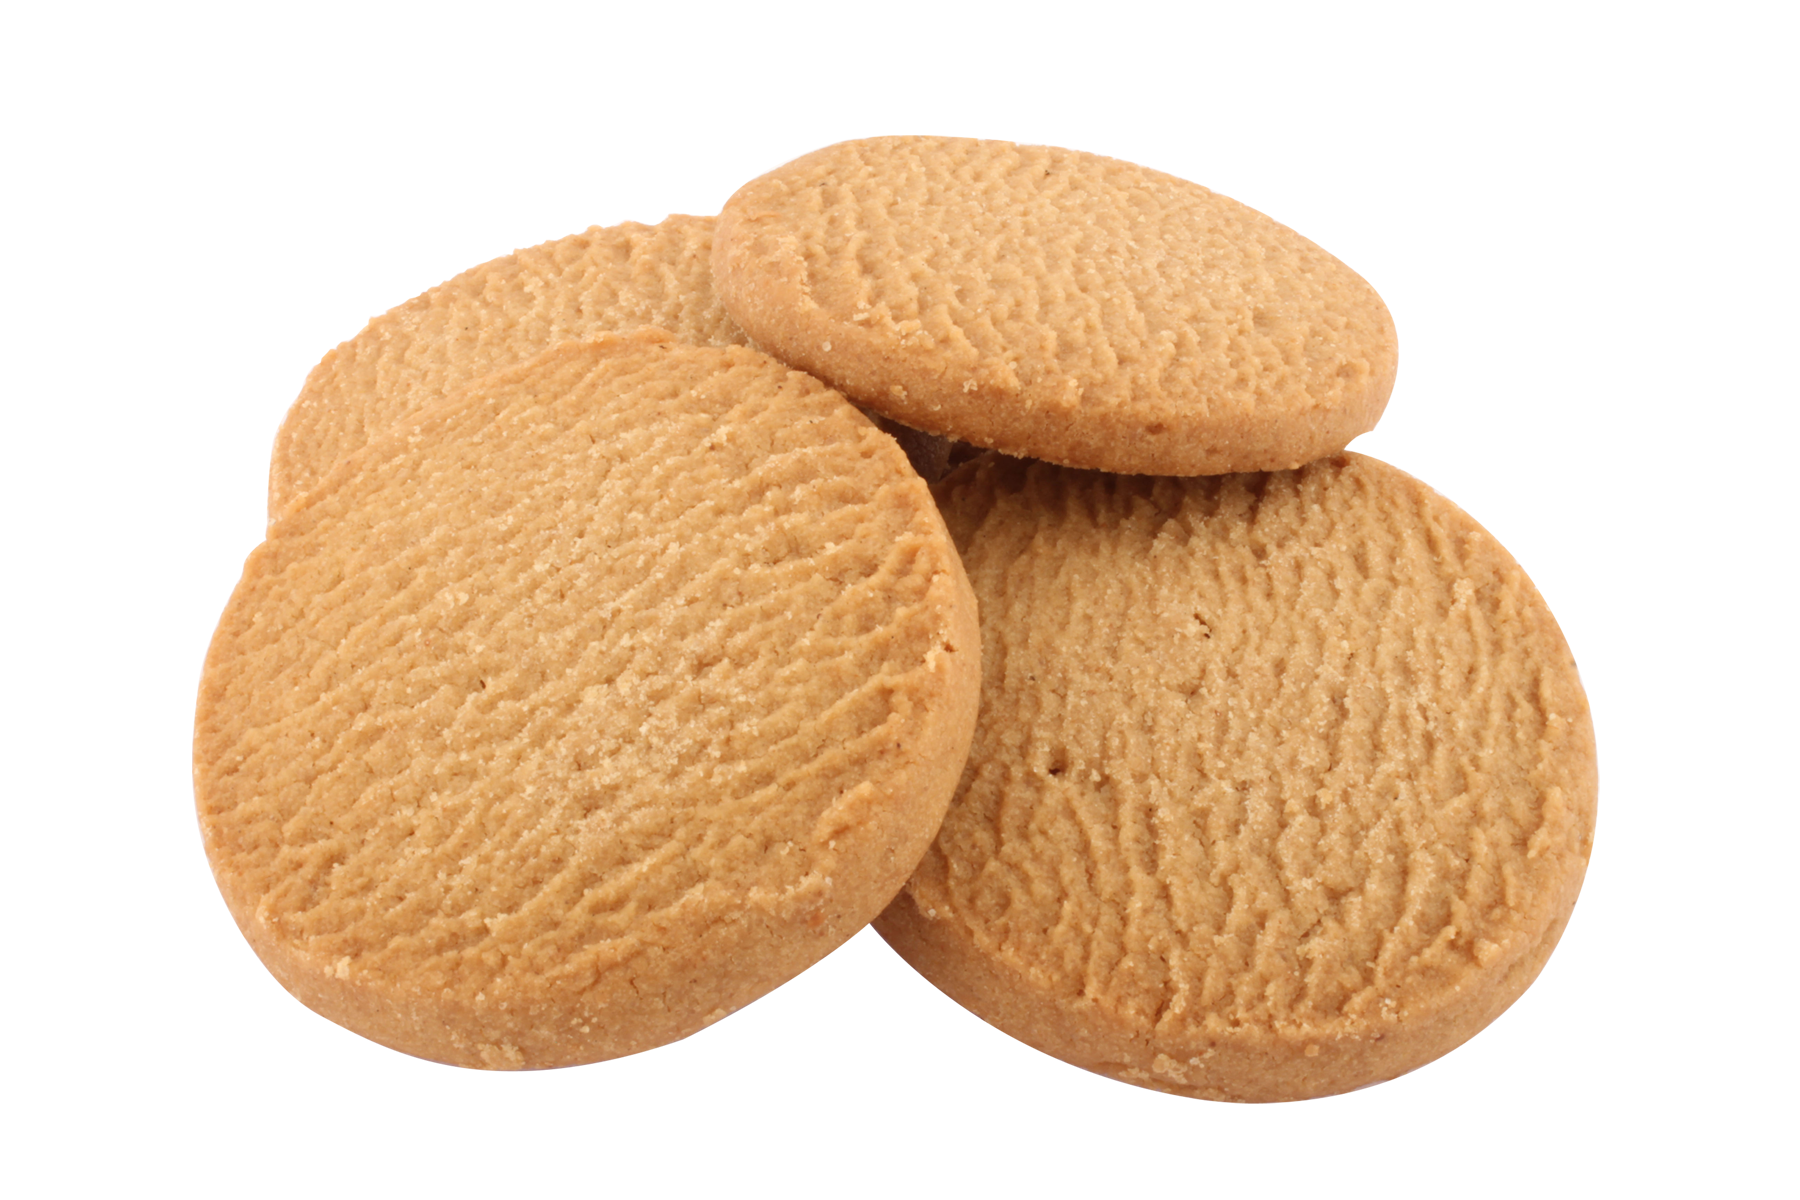 Biscuit Free Download Png PNG Image